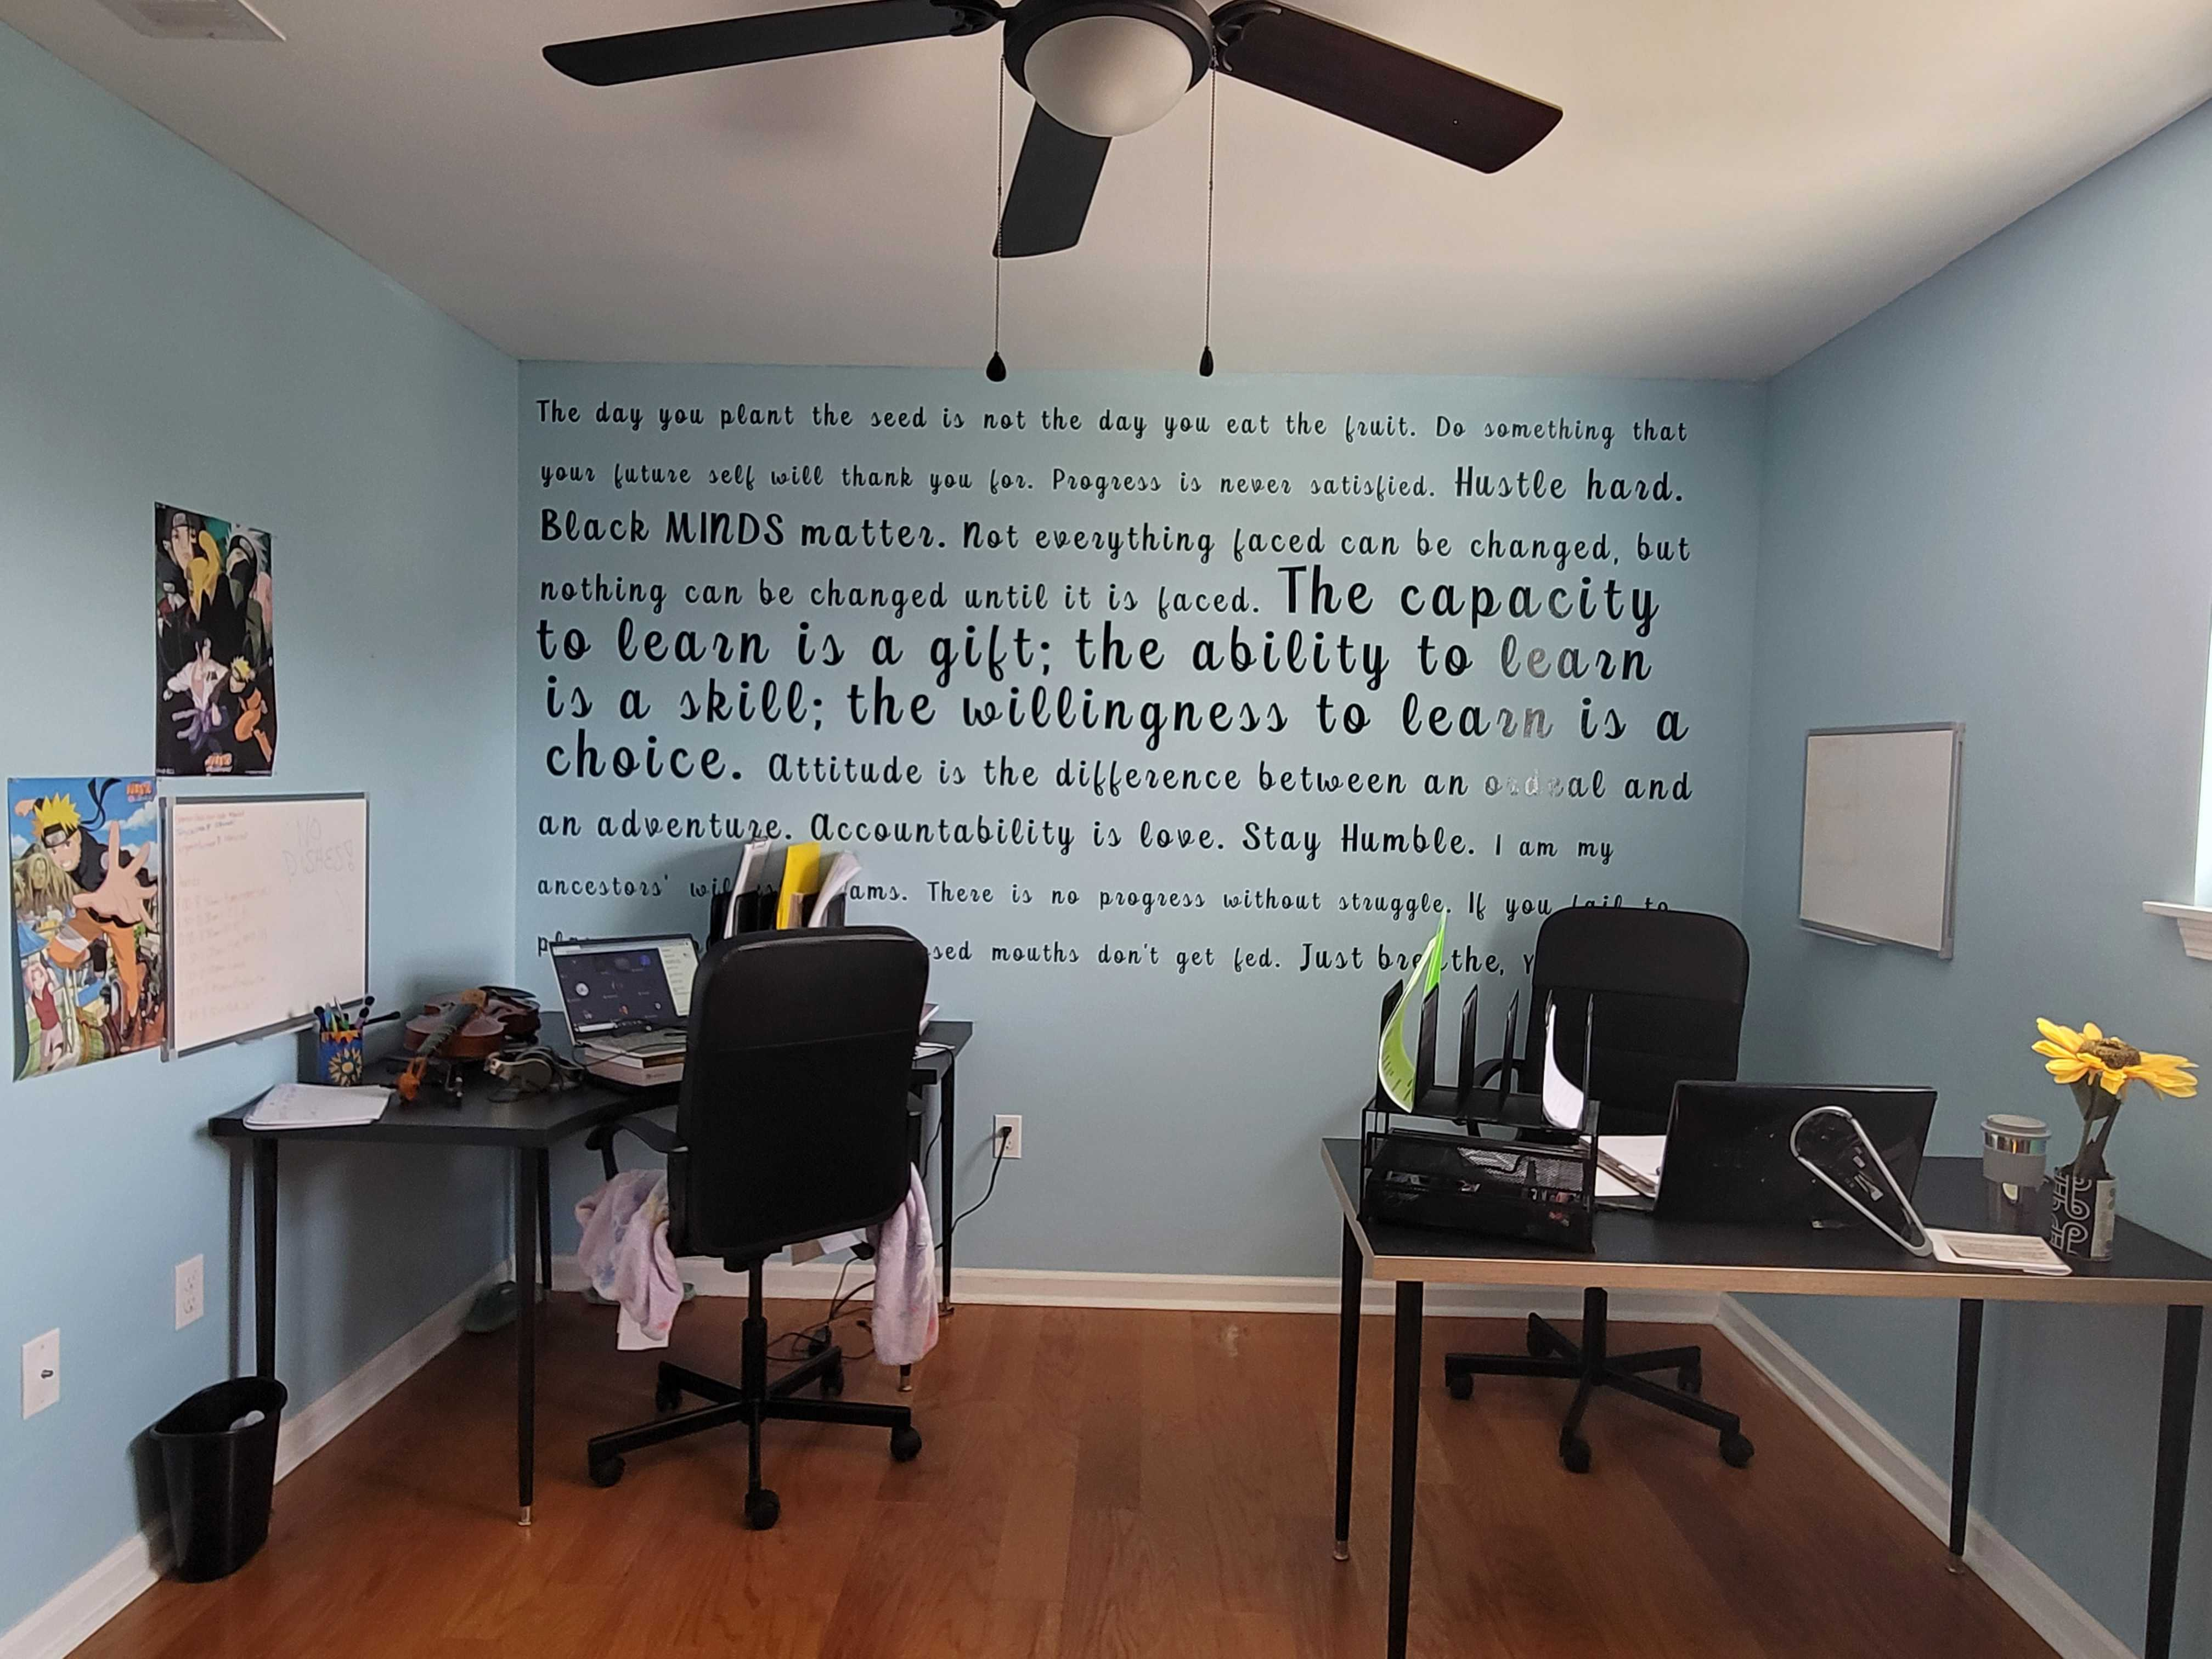 A room with desks and a wall of inspiring quotes.